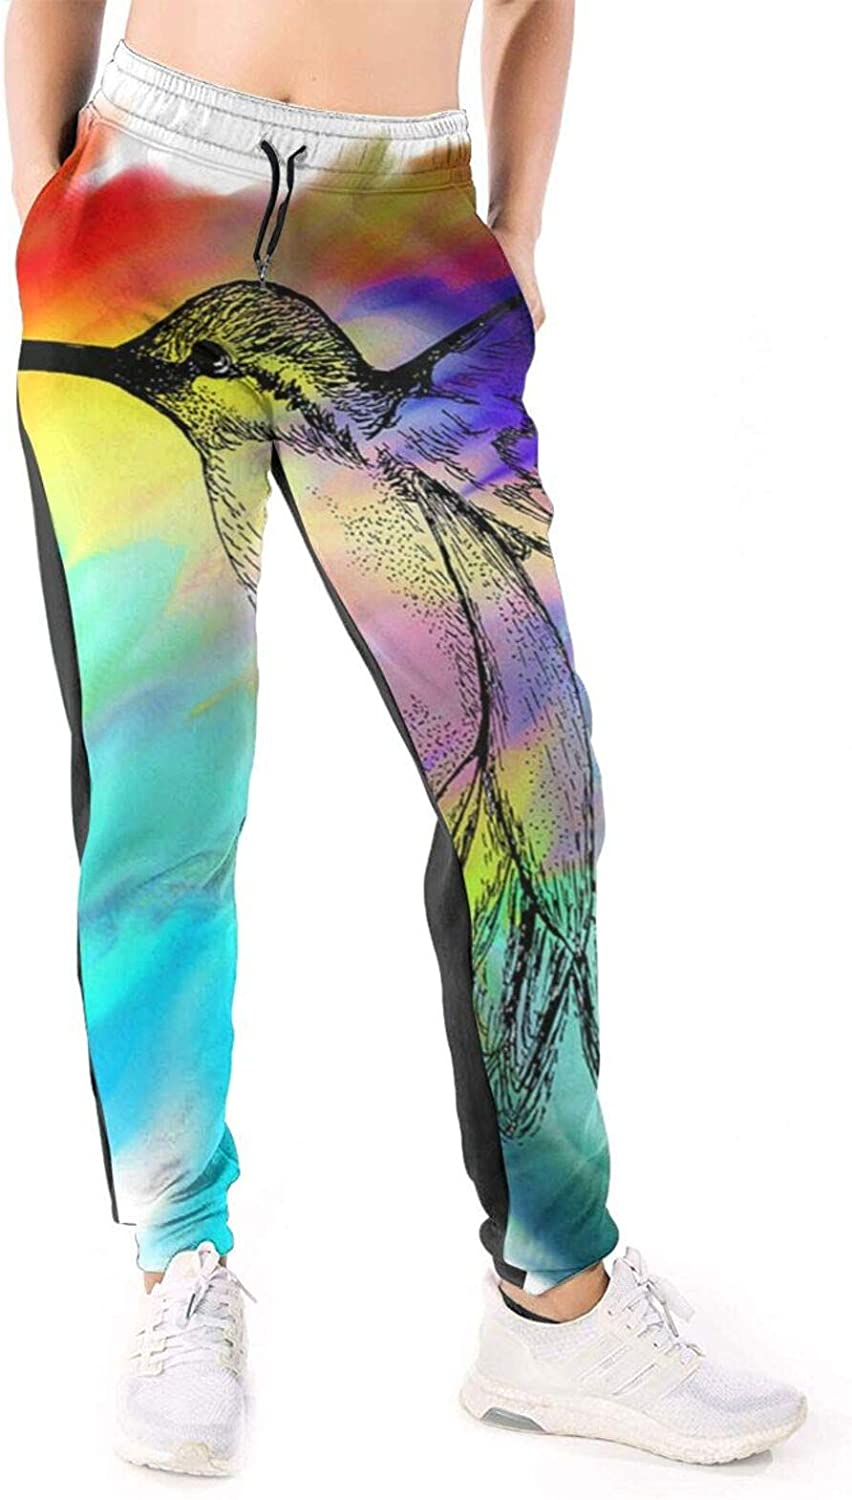 LONEA Women Joggers Pants Hummingbird Painting Abstract Athletic Sweatpants with Pockets Casual Trousers Baggy